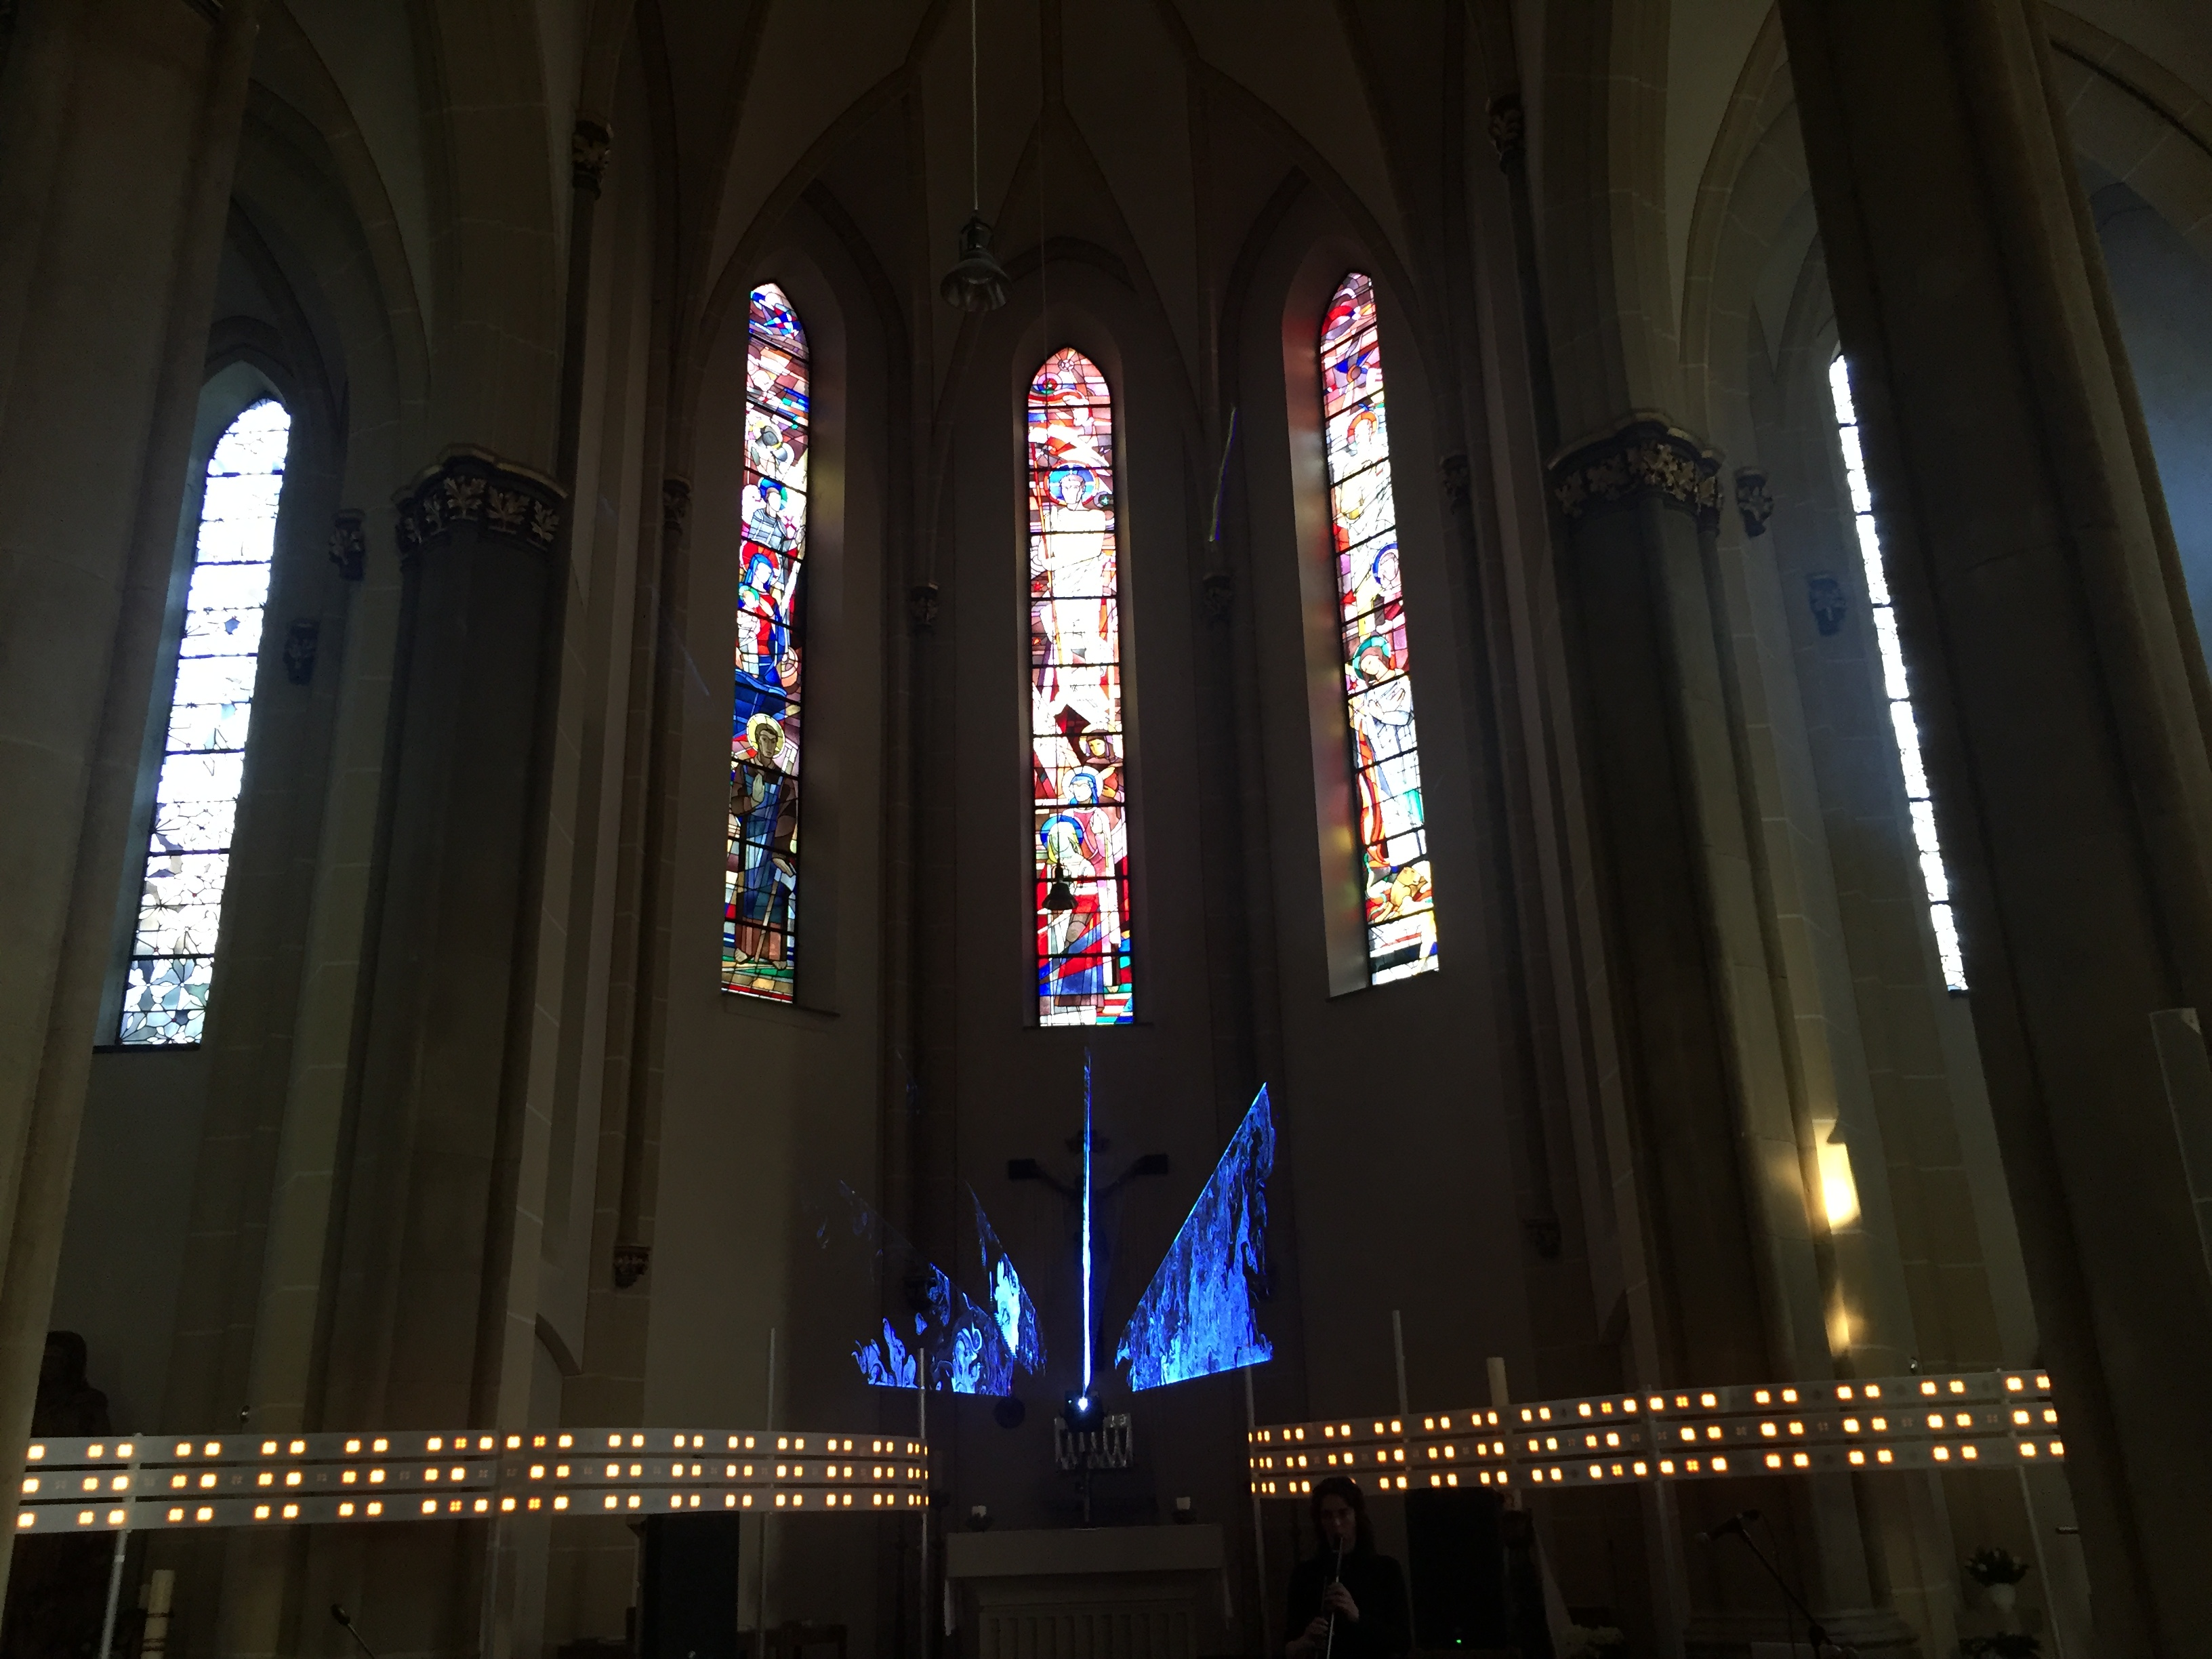 Meditative concert, Catholic Church in Moers, Germany, April 2018